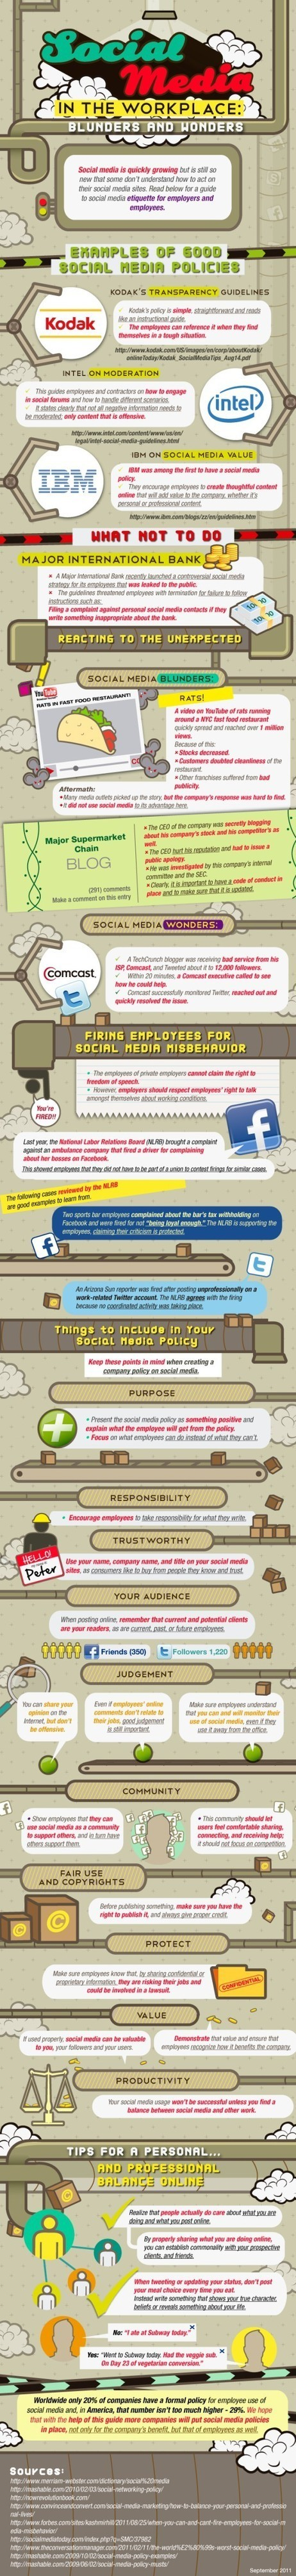 Social Media in the Workplace -- Infographic Reflects Types of Material Included in Bovee & Thill Texts | Business Communication 2.0: Social Media and Digital Communication | Scoop.it